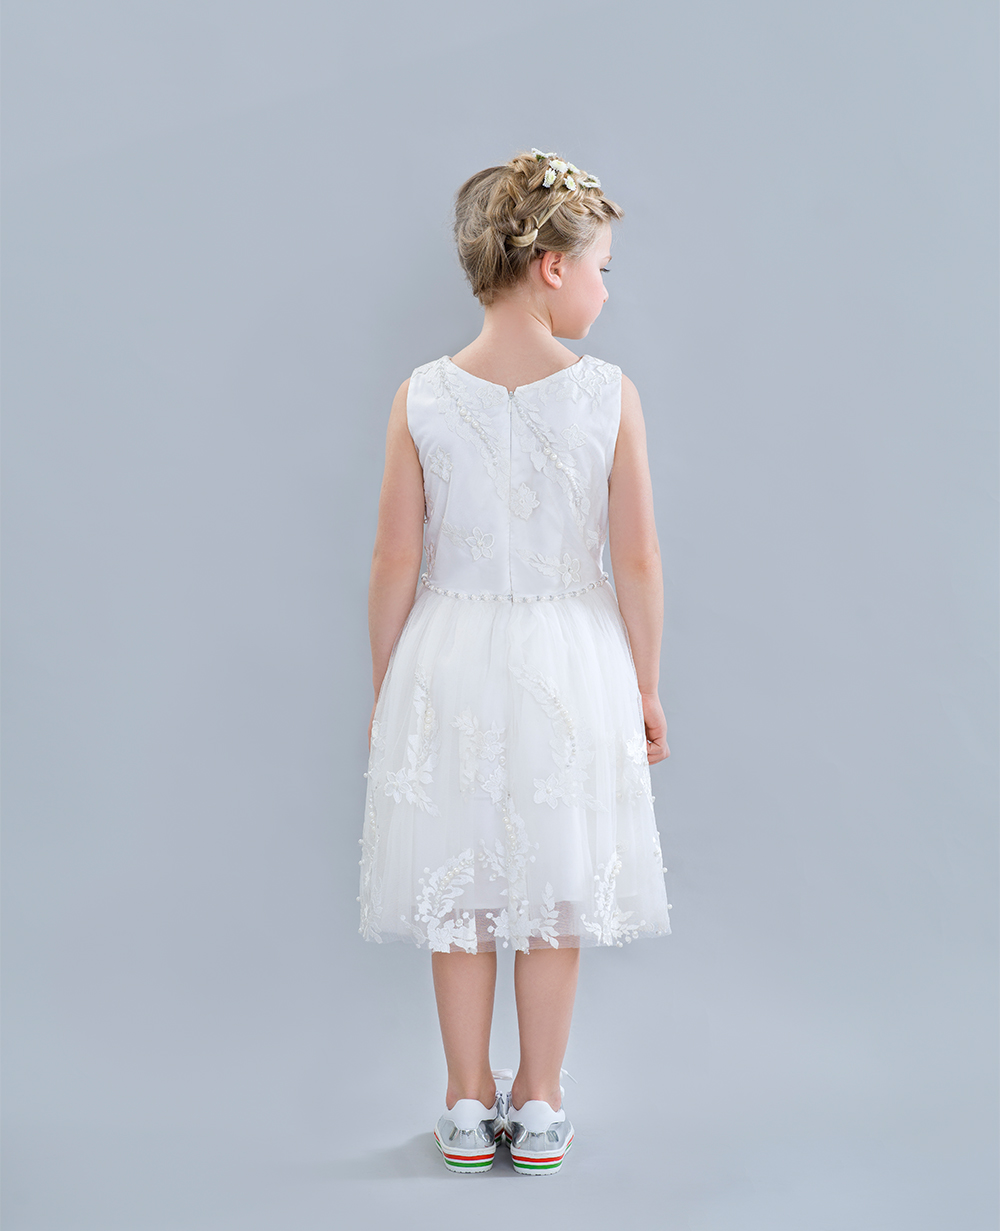 White Dress Wedding Dress  Sleeveless Formal Wear Flowergirl